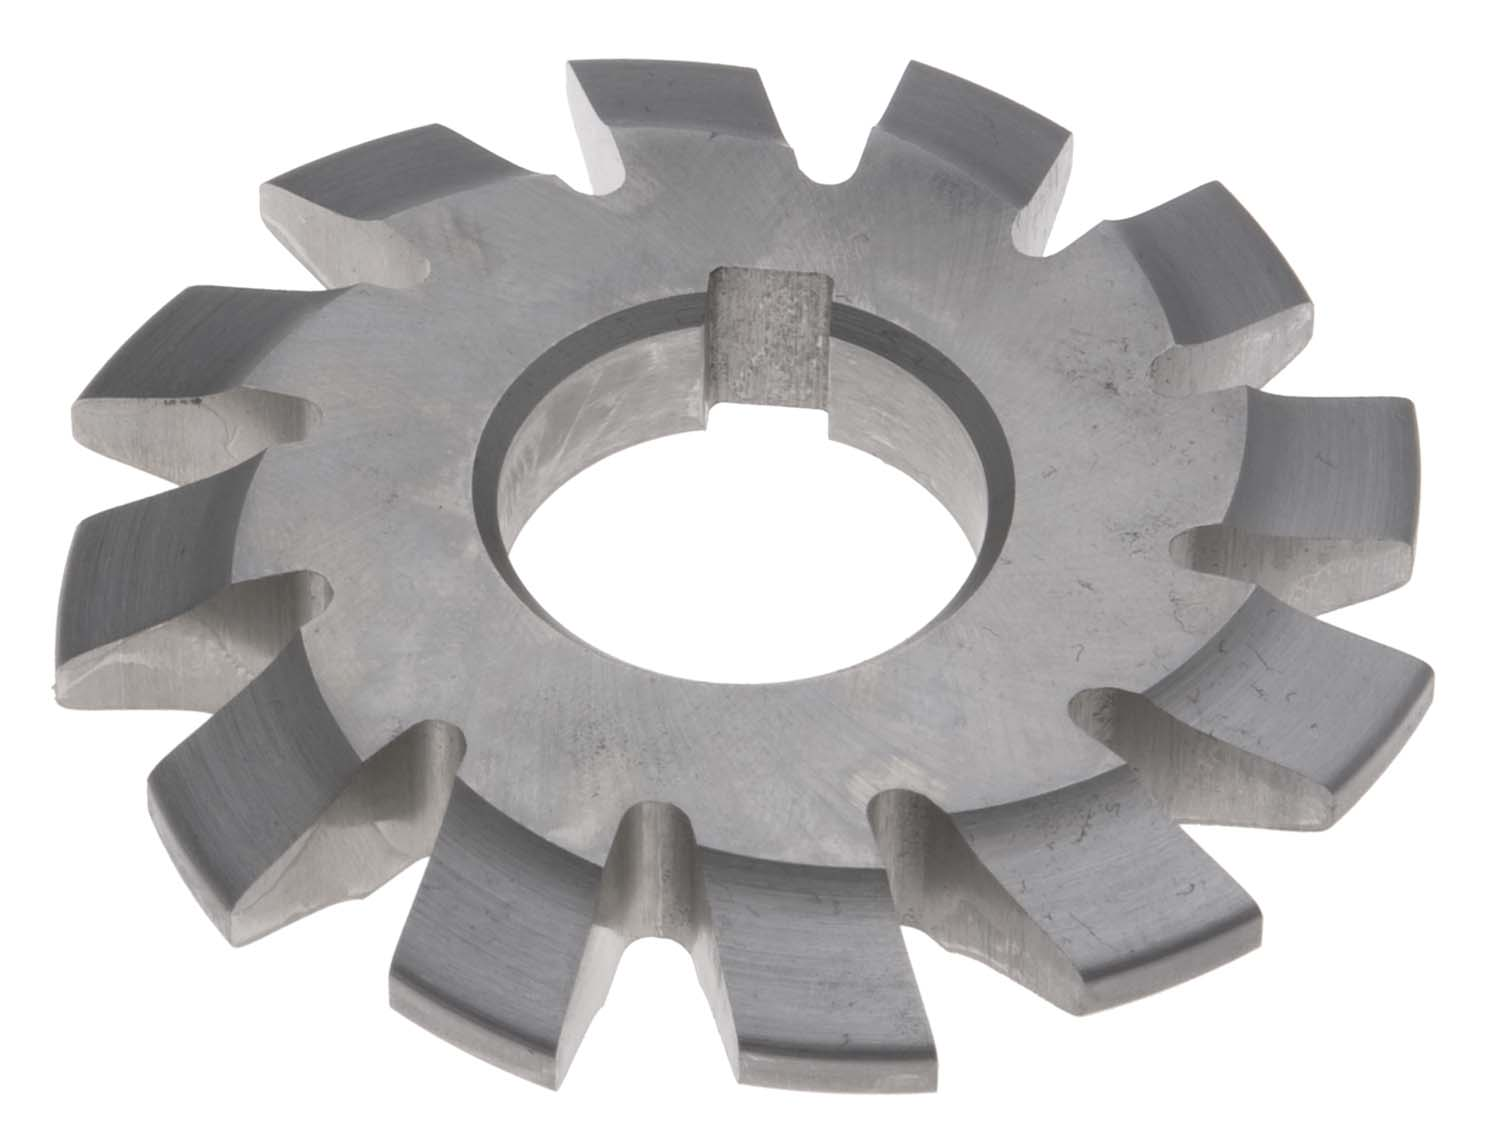 7 Diametral Pitch # 3  Involute Gear Cutter - 1 Inch ID - 14-1/2 Degree Pressure Angle